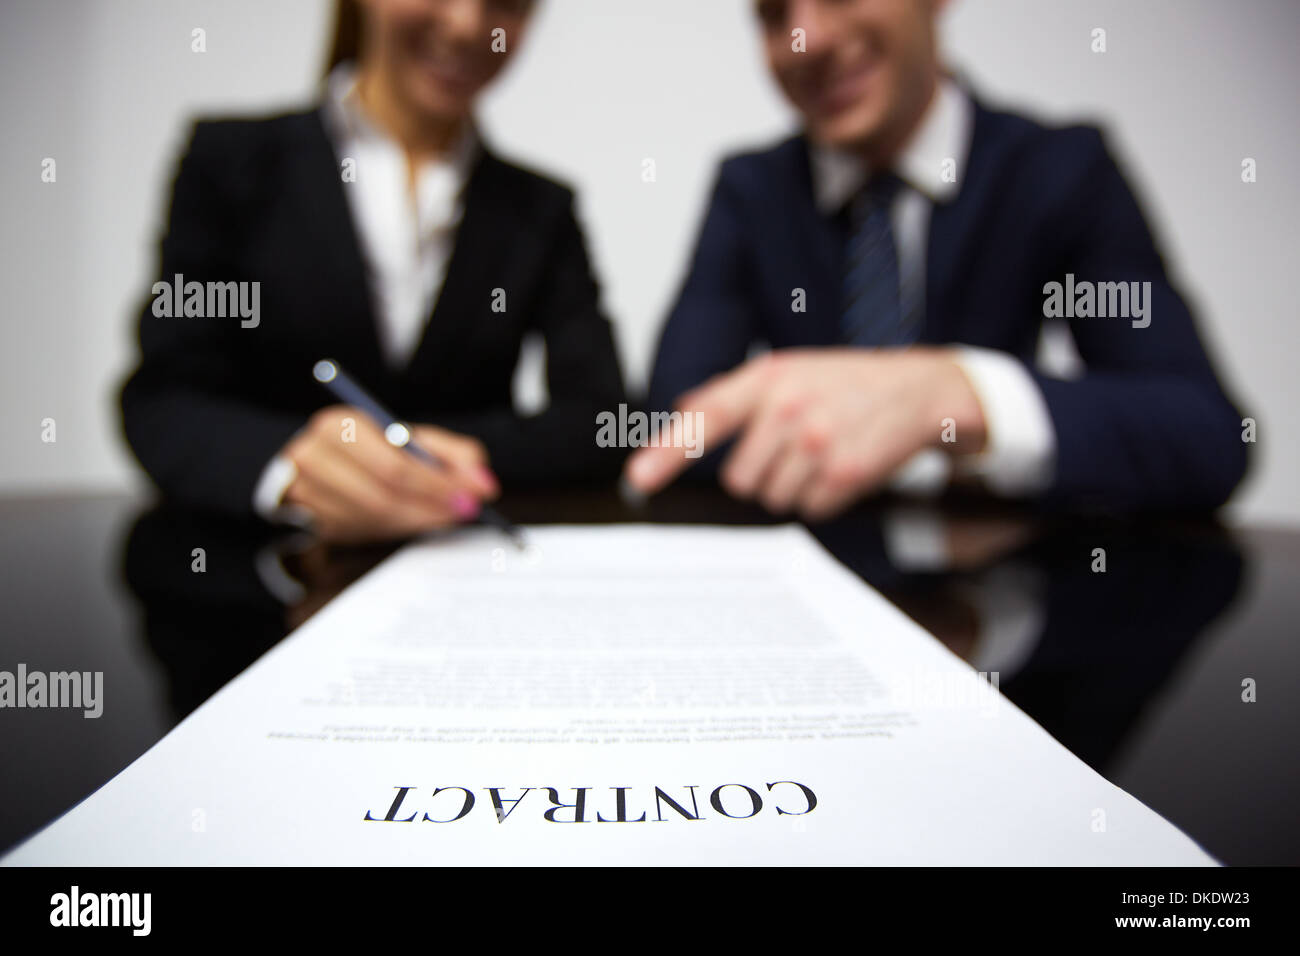 Image of human hands during signing contract - Stock Image